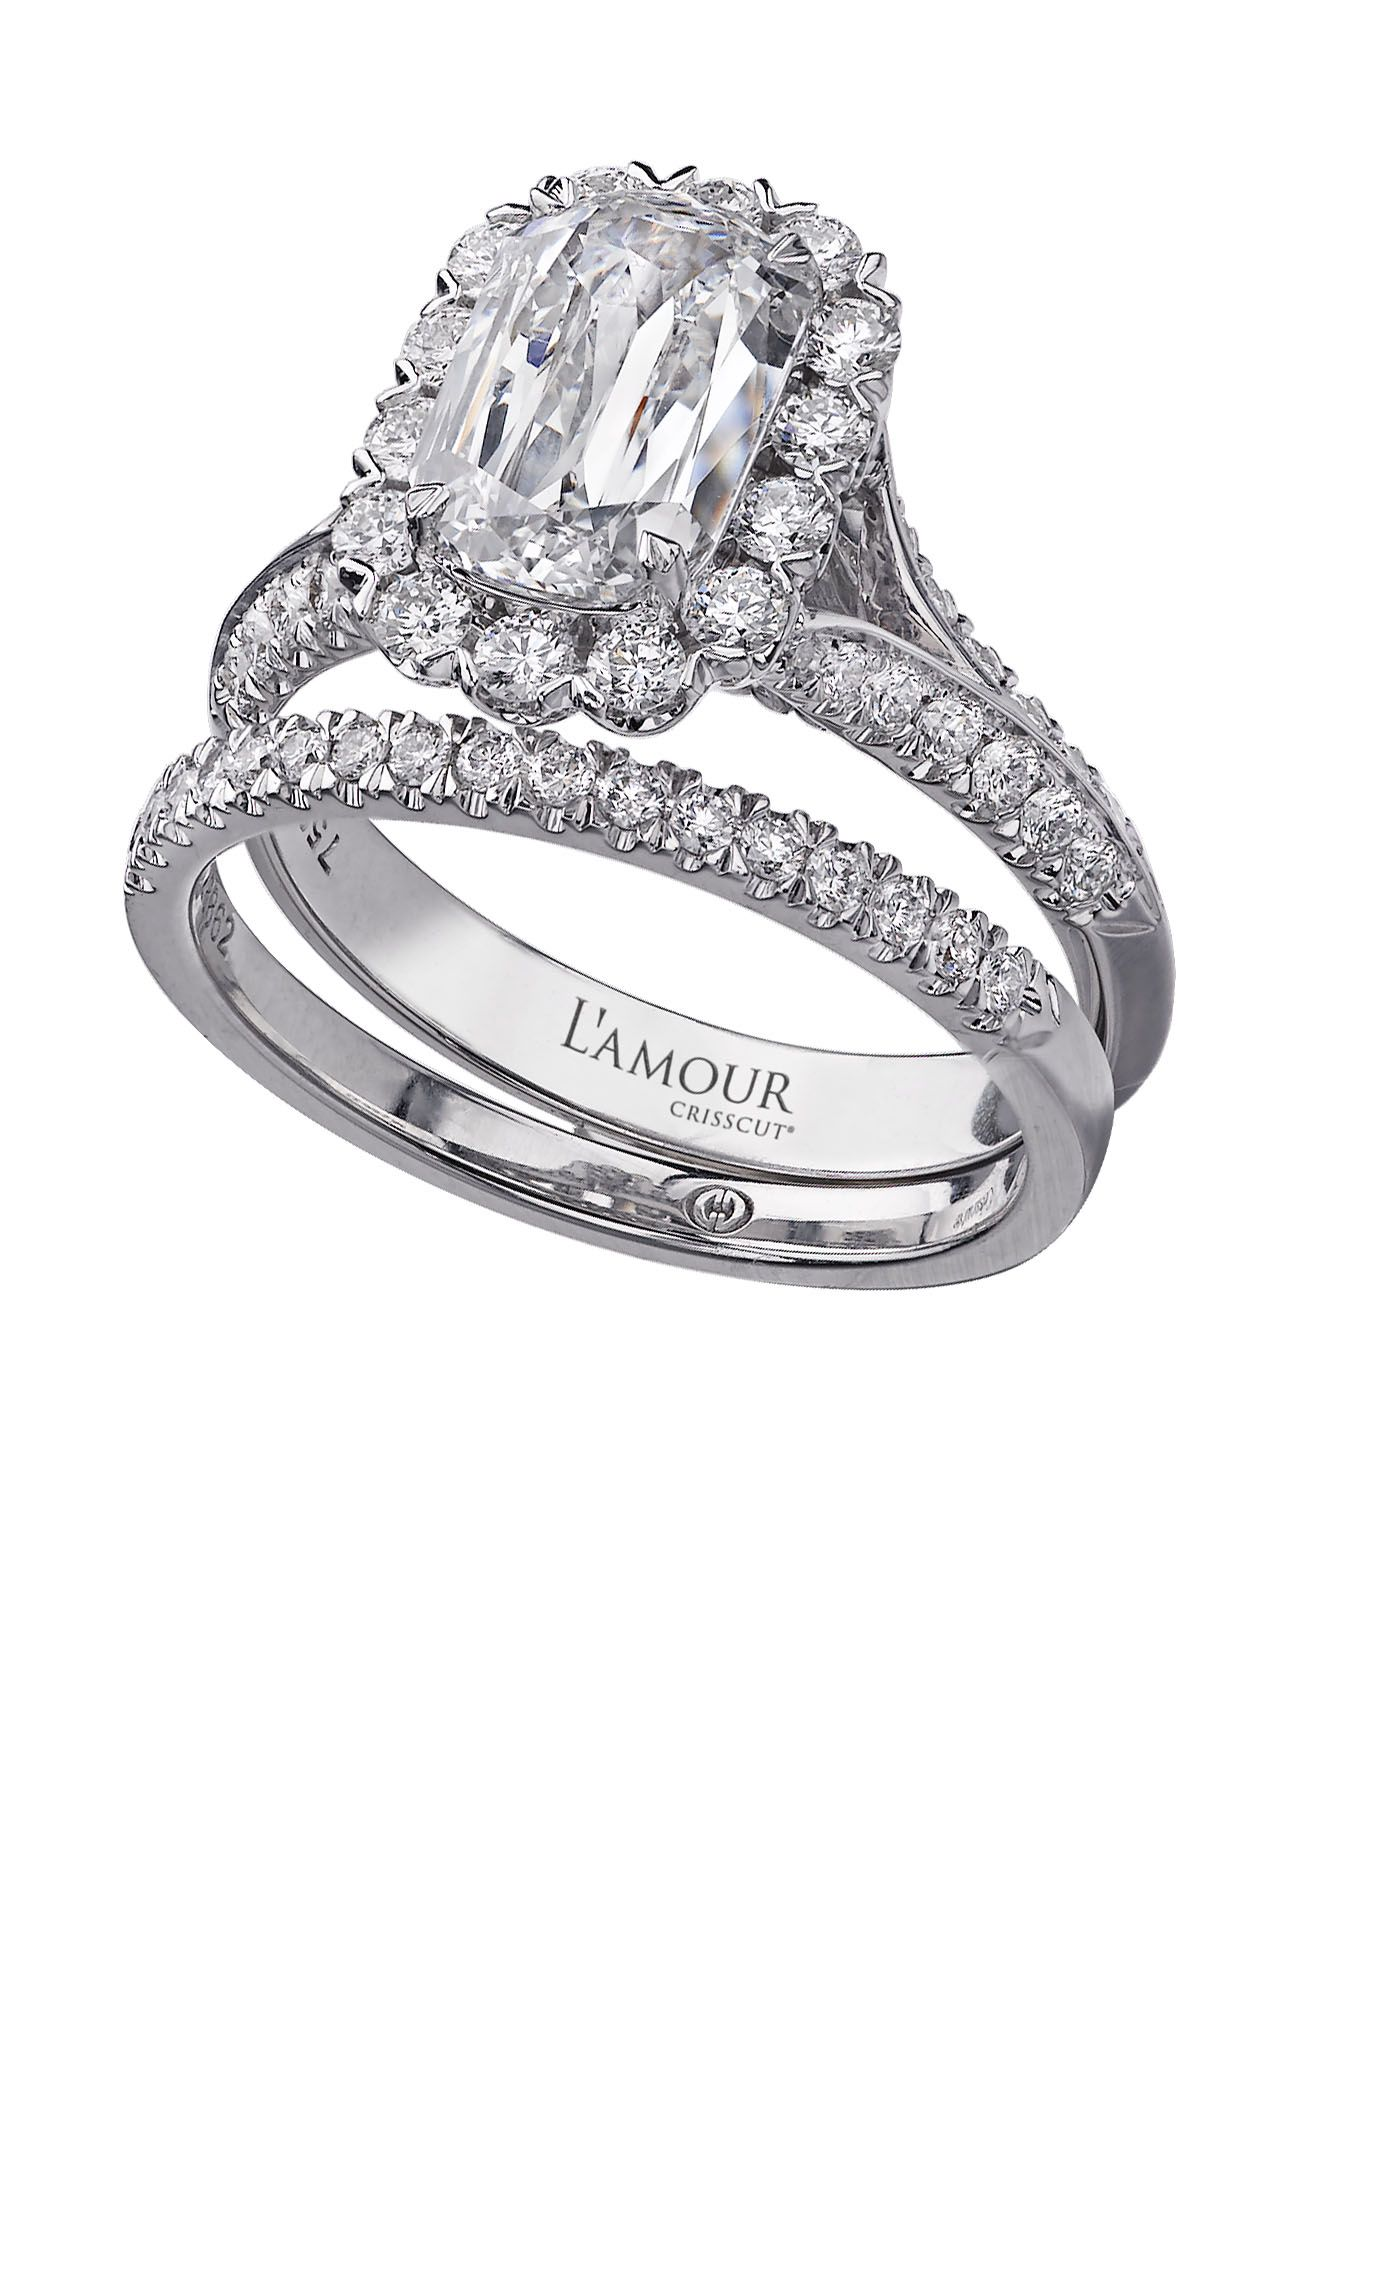 L Amour Crisscut bridal set in 18k white gold wedding